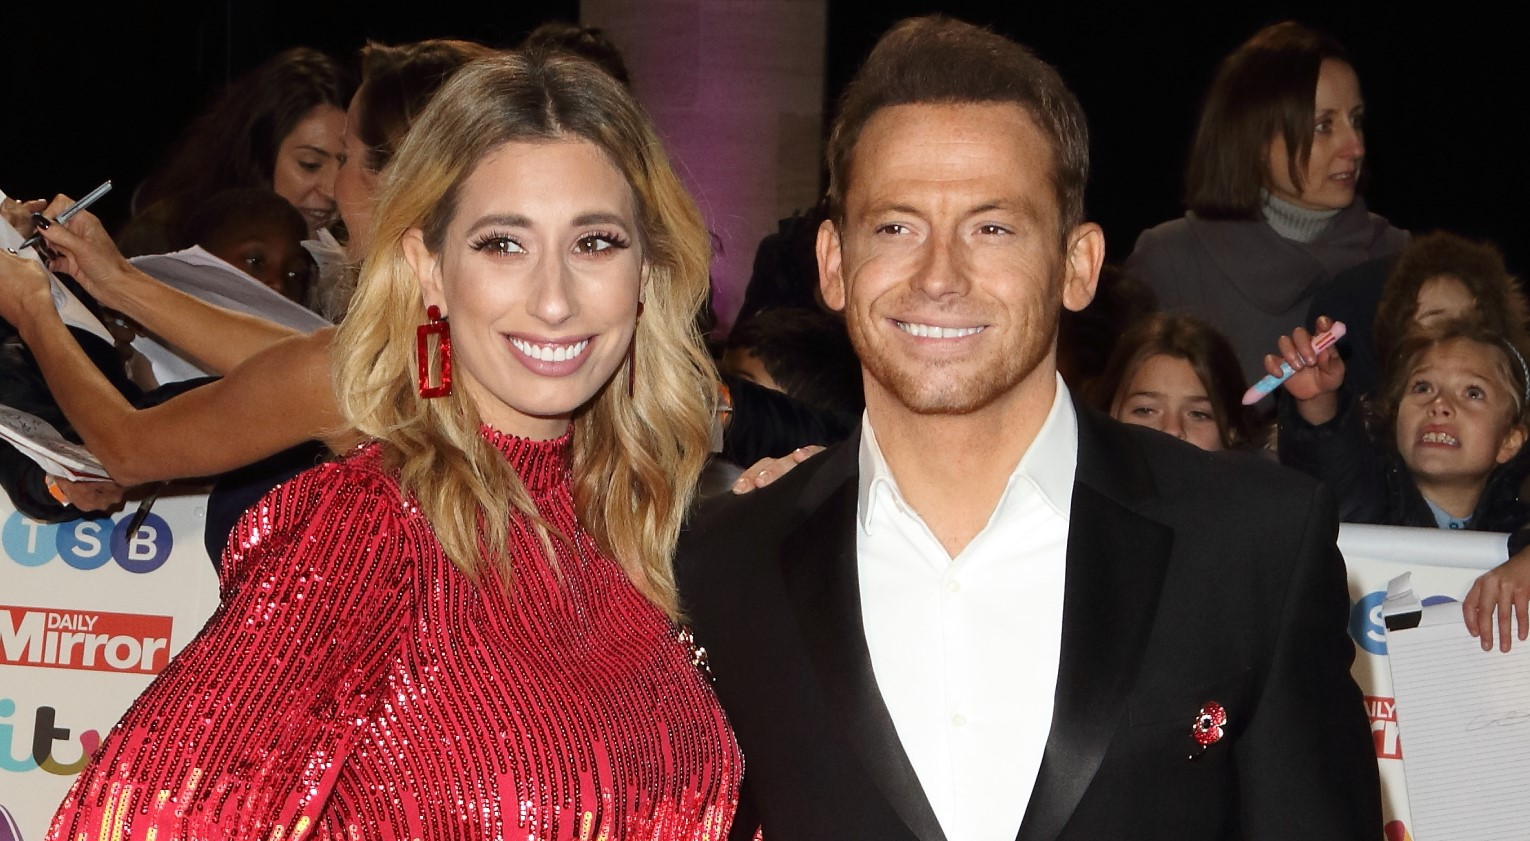 Stacey Solomon shares sweet family pic as she reunites with Joe Swash